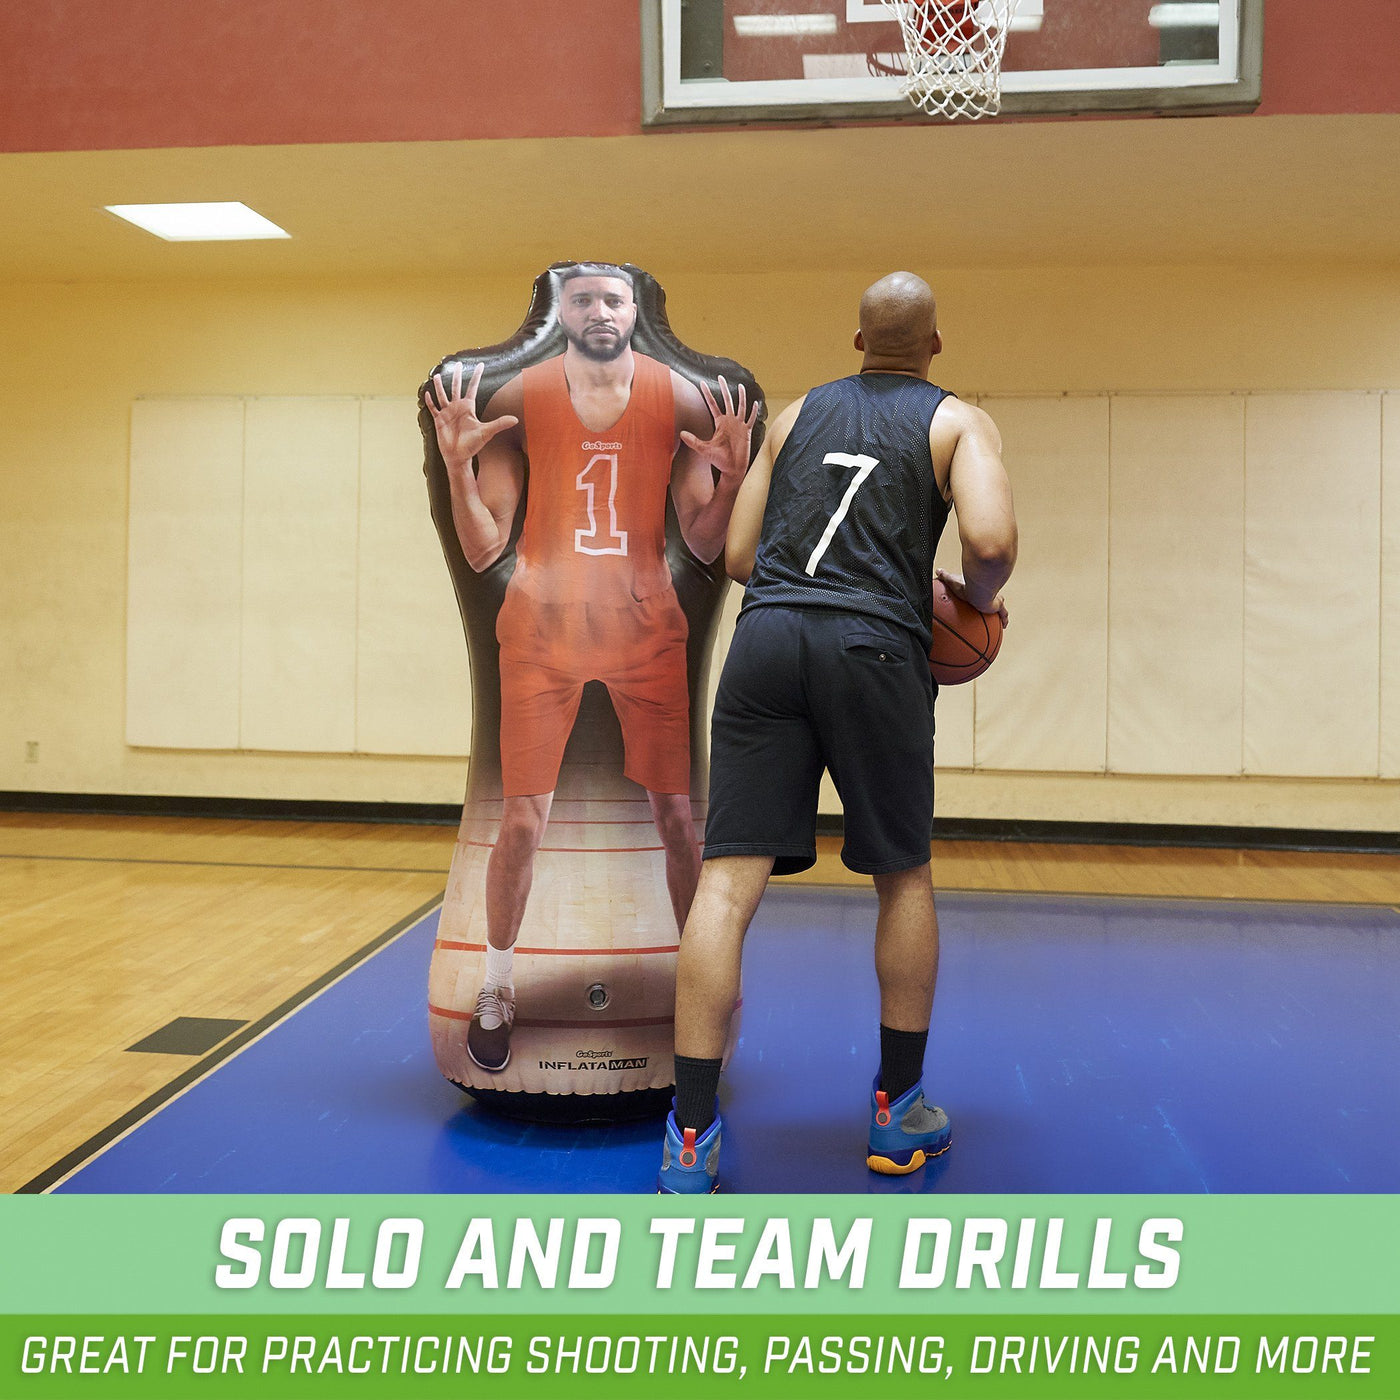 Dribbling and Driving Drills Weighted Defensive Dummy for Shooting GoSports Inflataman Basketball Defender Training Aid